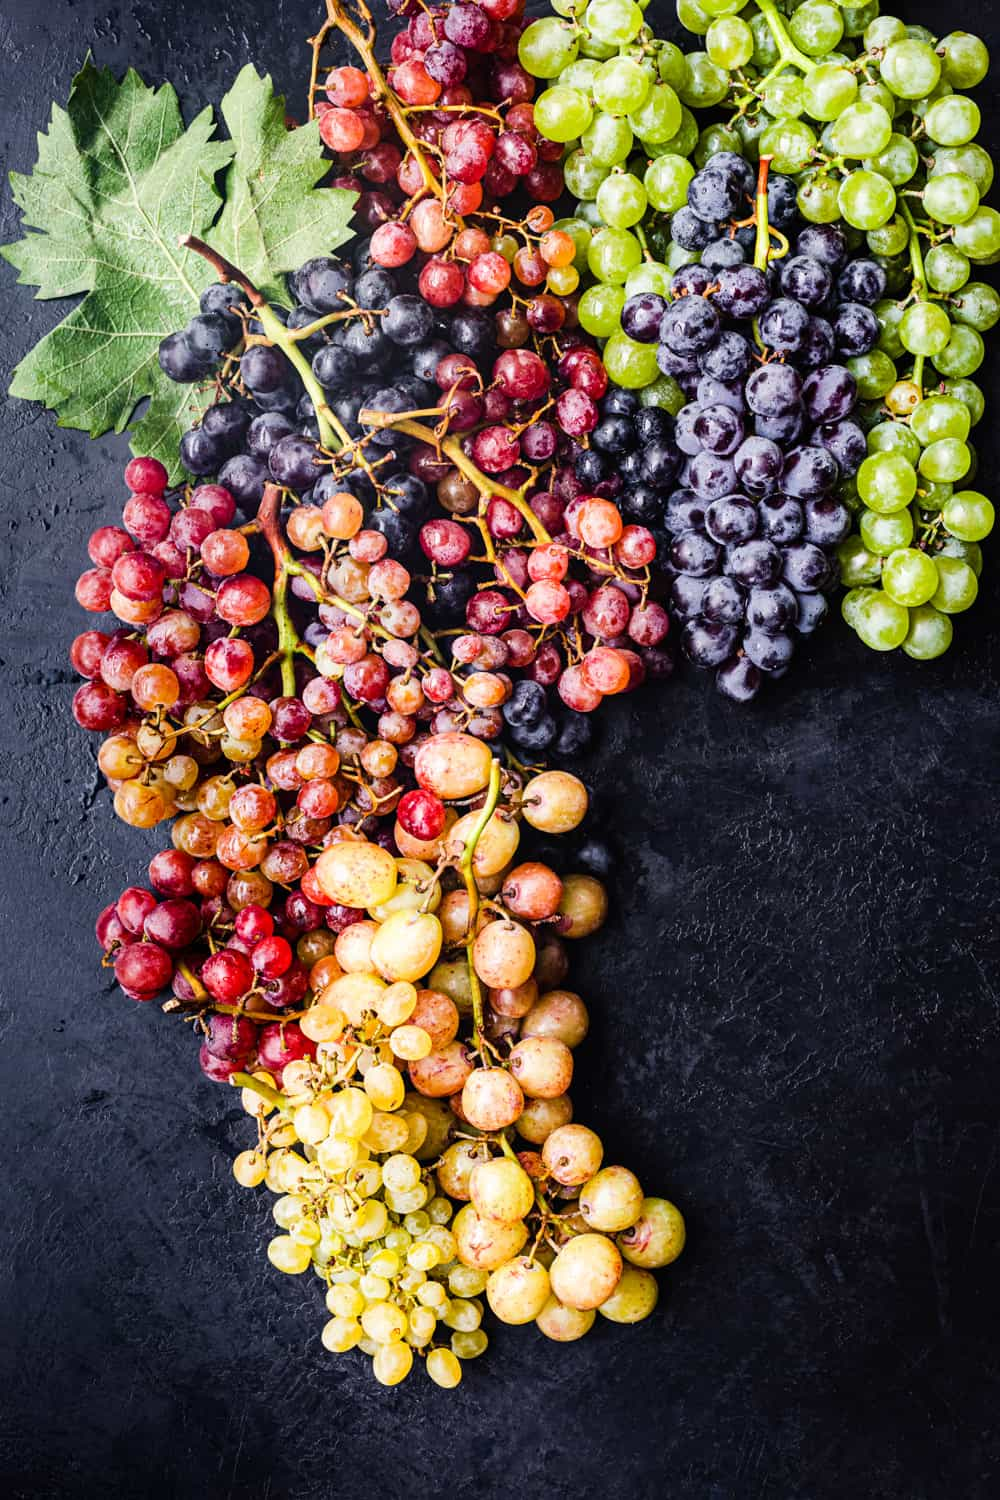 Red, green, orange, yellow, and purple grapes on the vine on a black background; overhead shot.